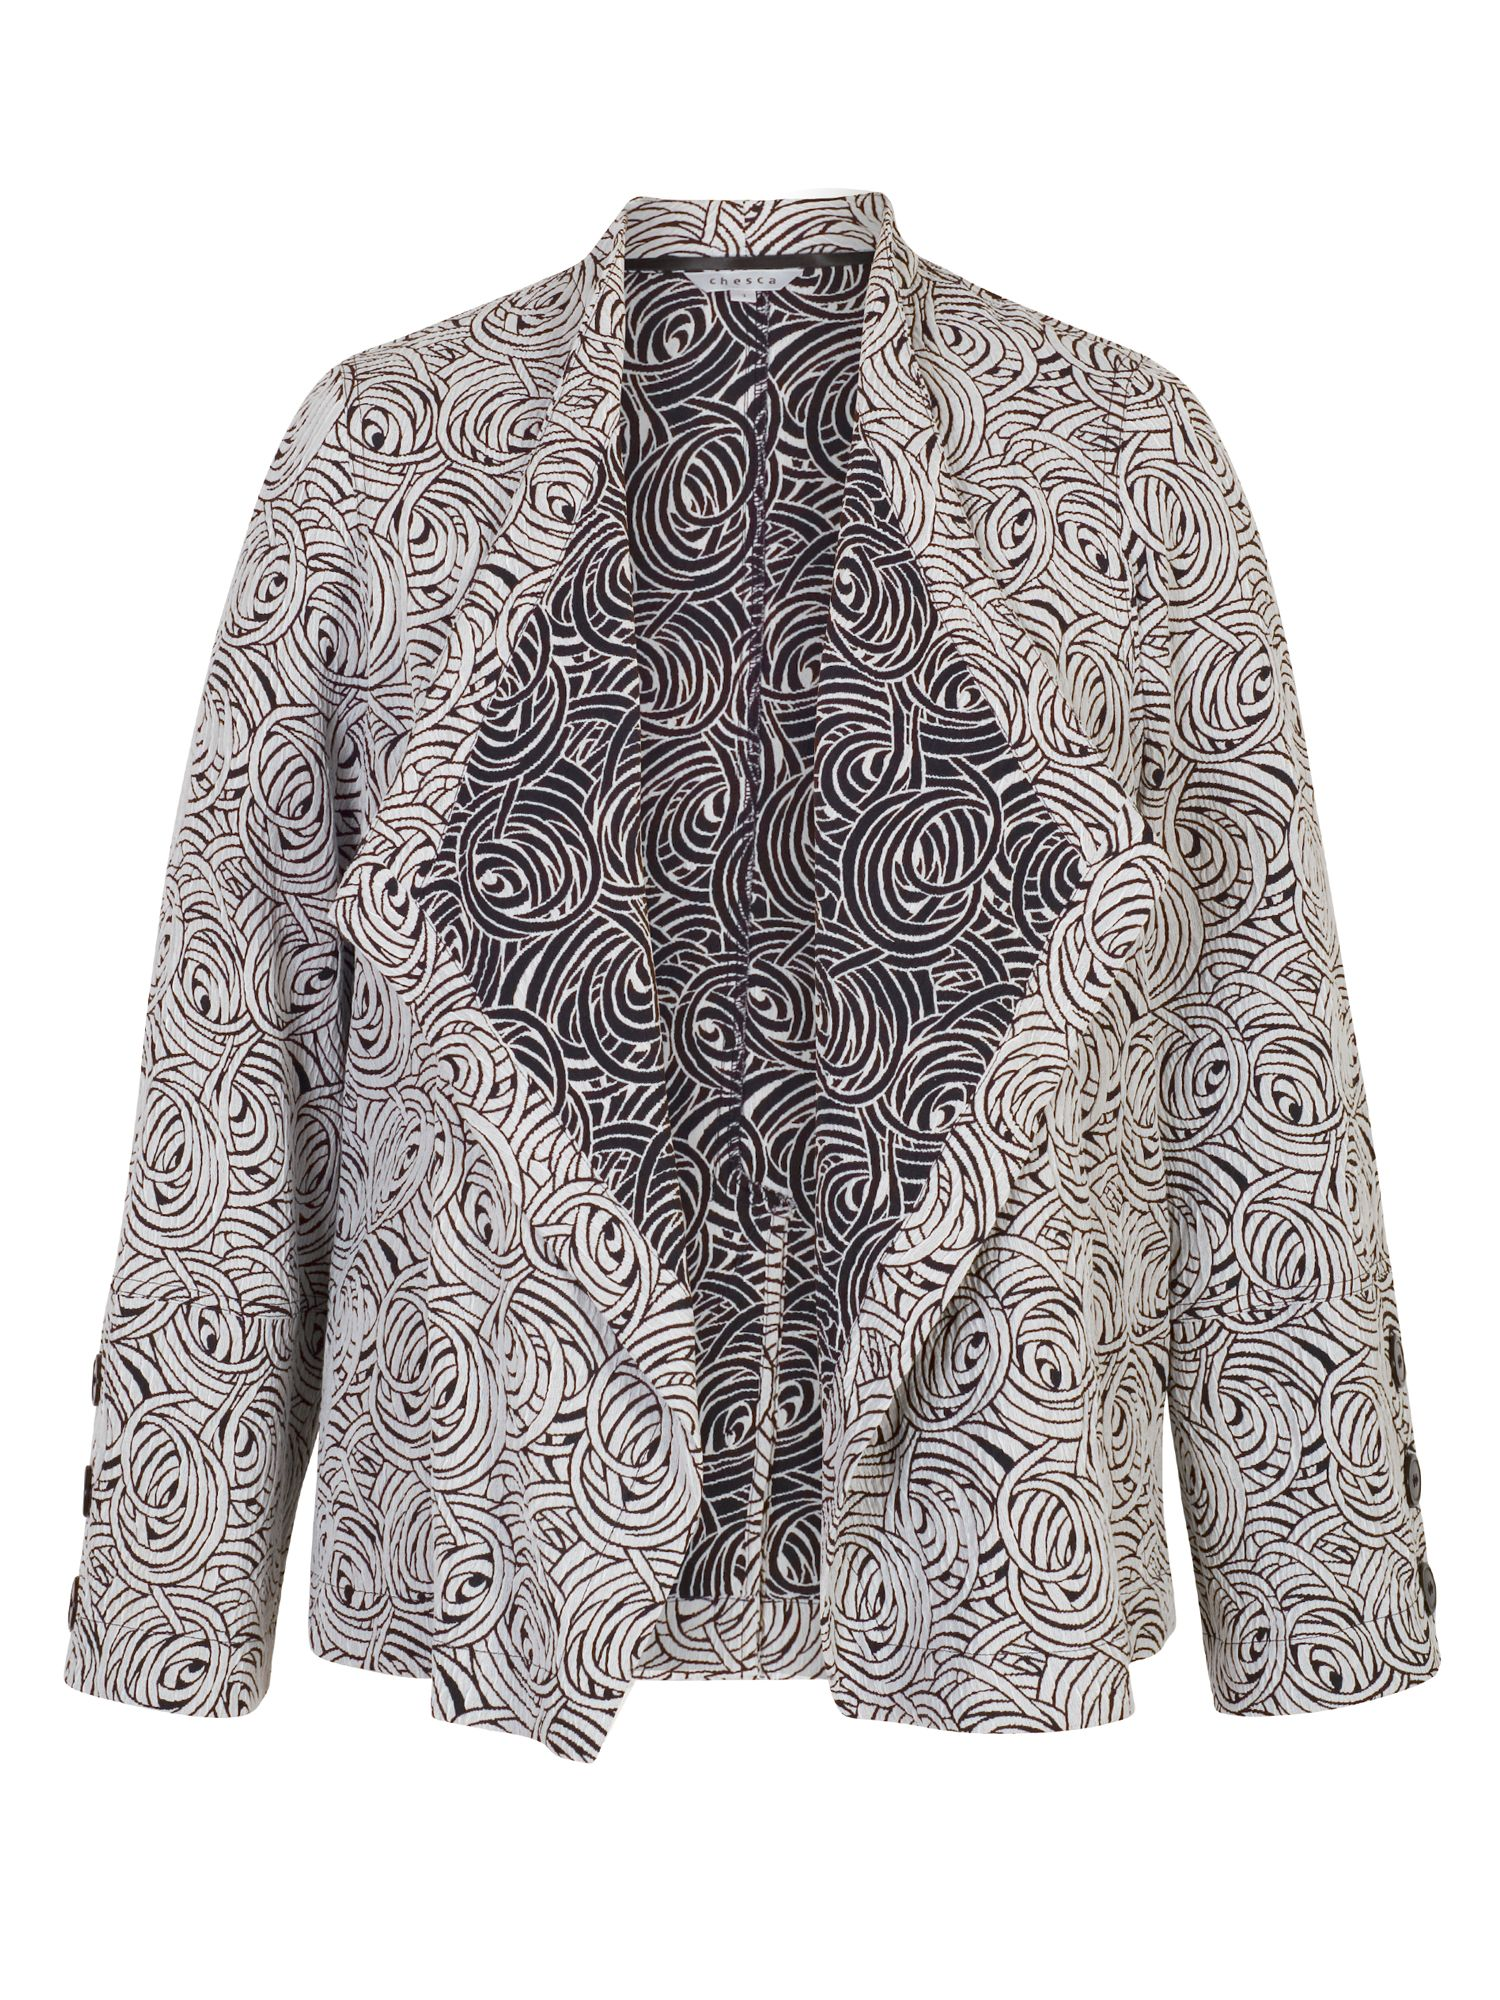 Chesca Swirl Jacquard Button Trim Jacket, Blue